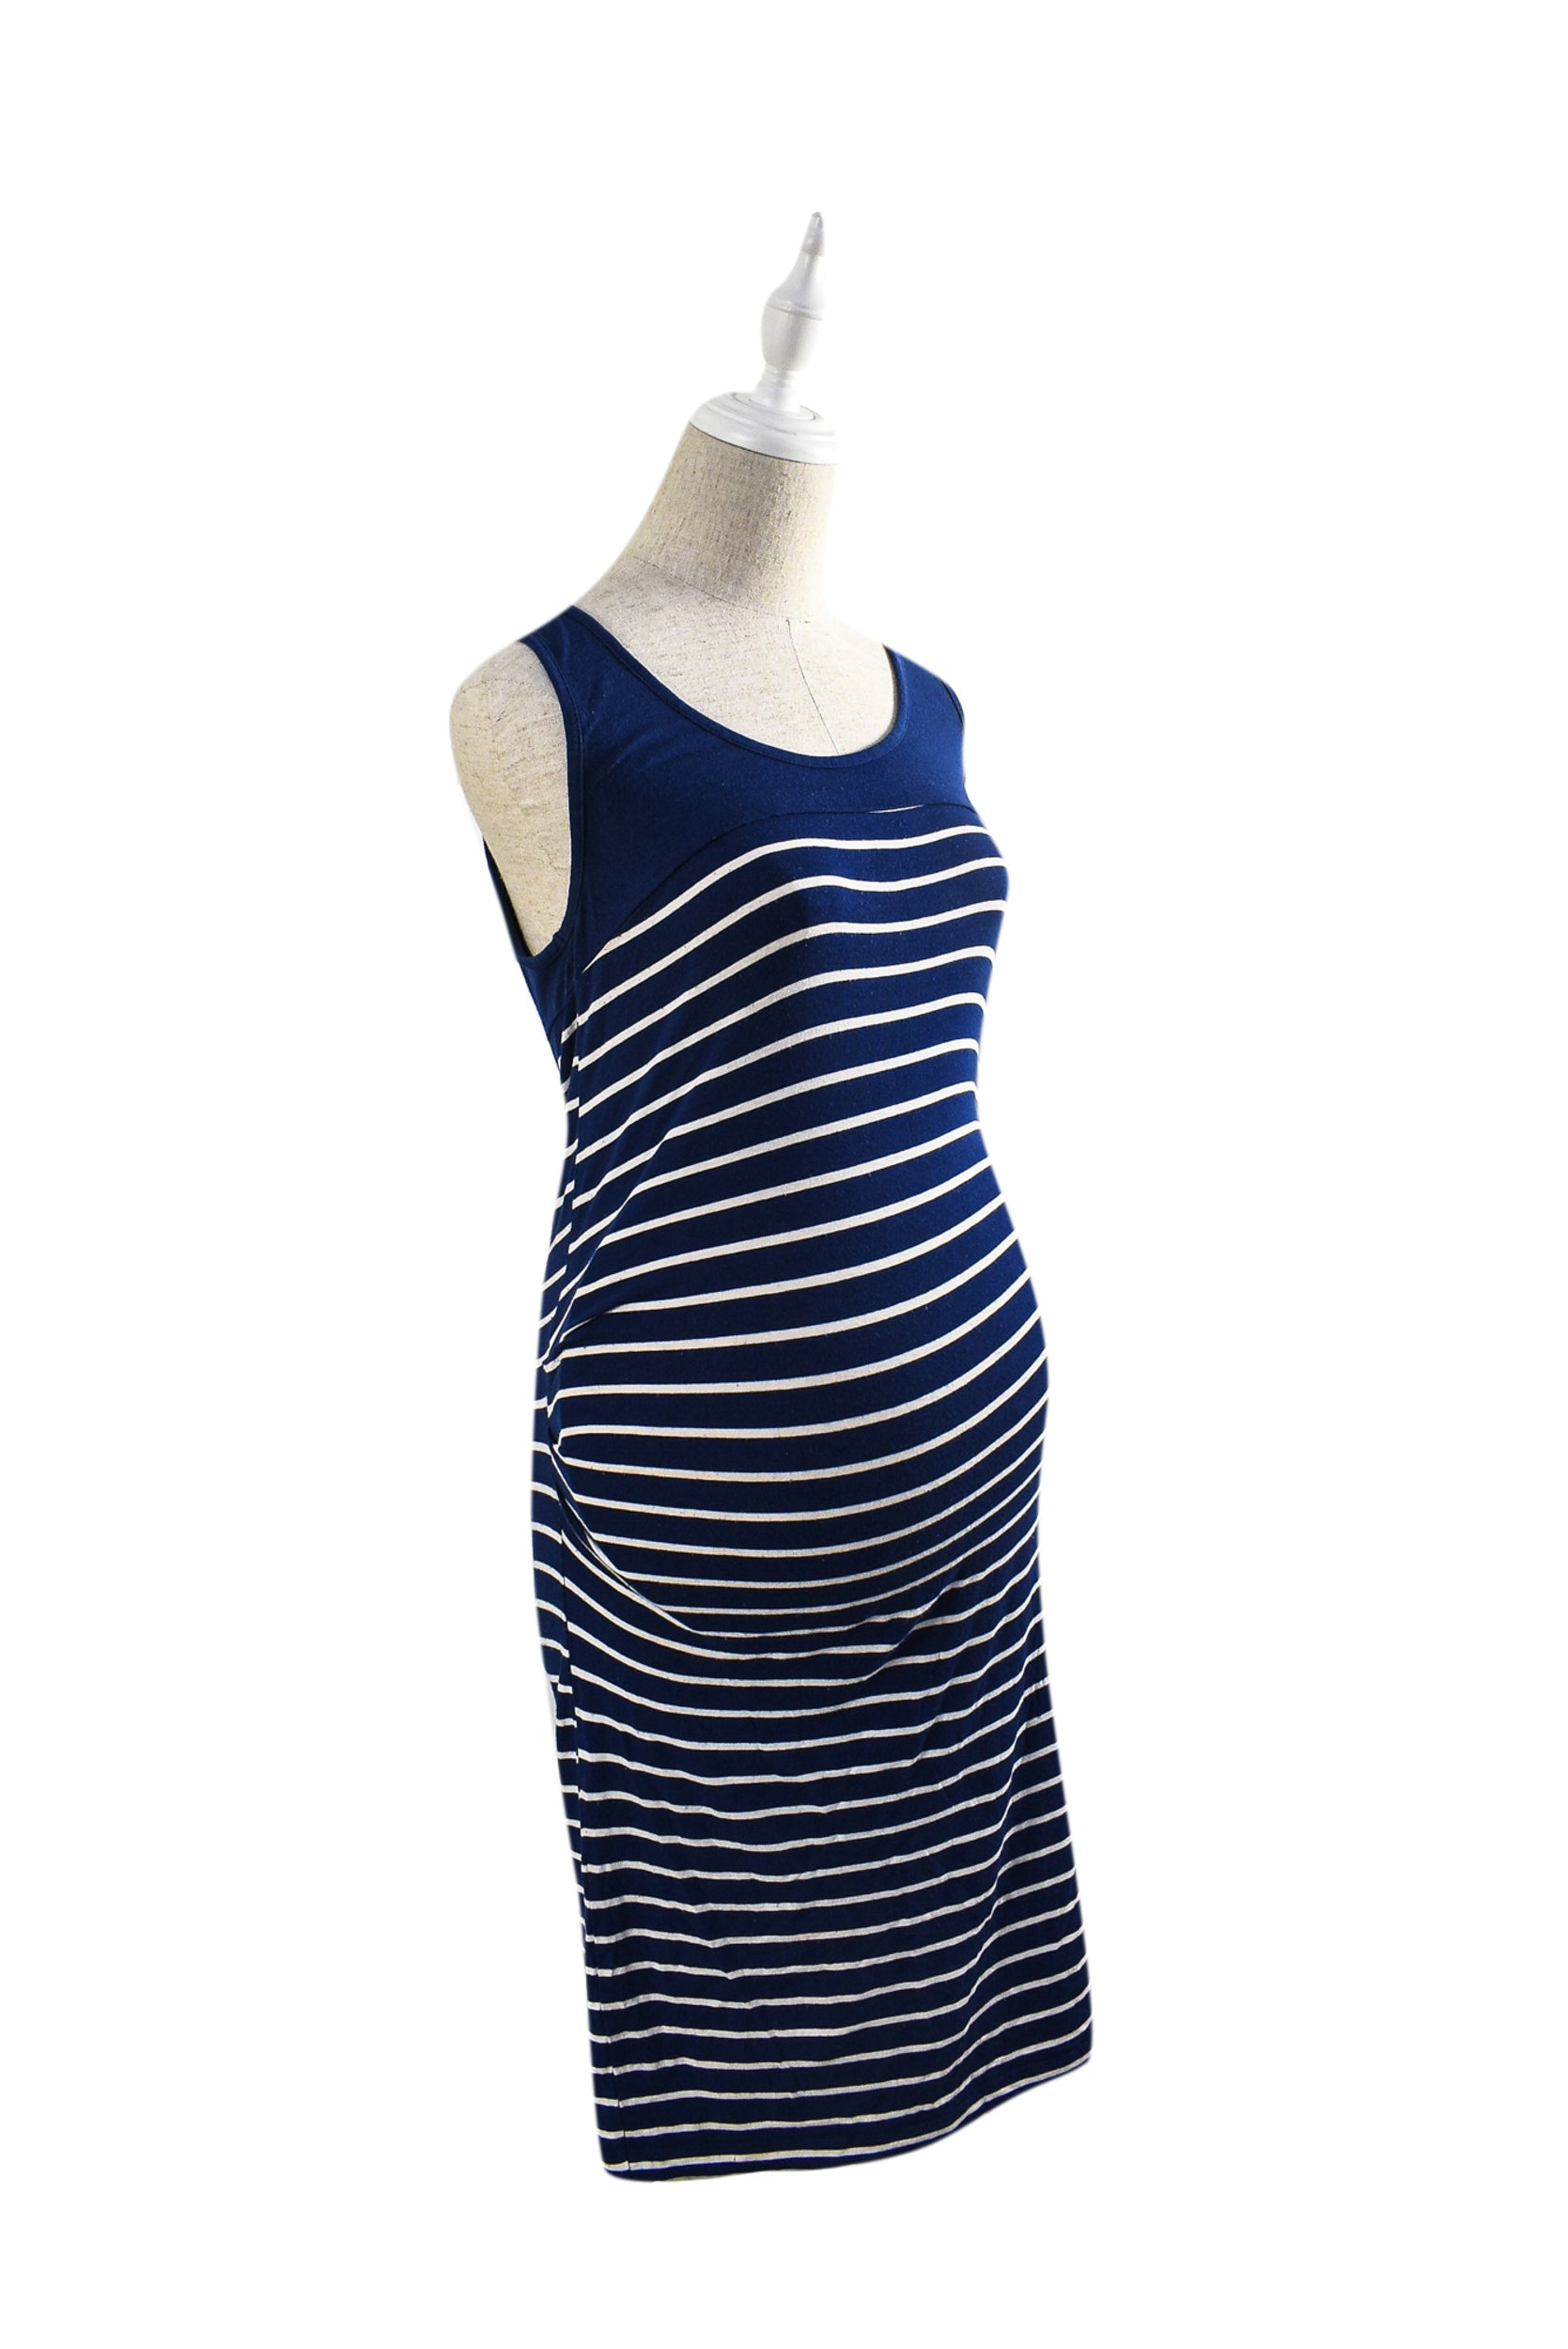 Maternity Sleeveless Dress XS (US 4) at Retykle